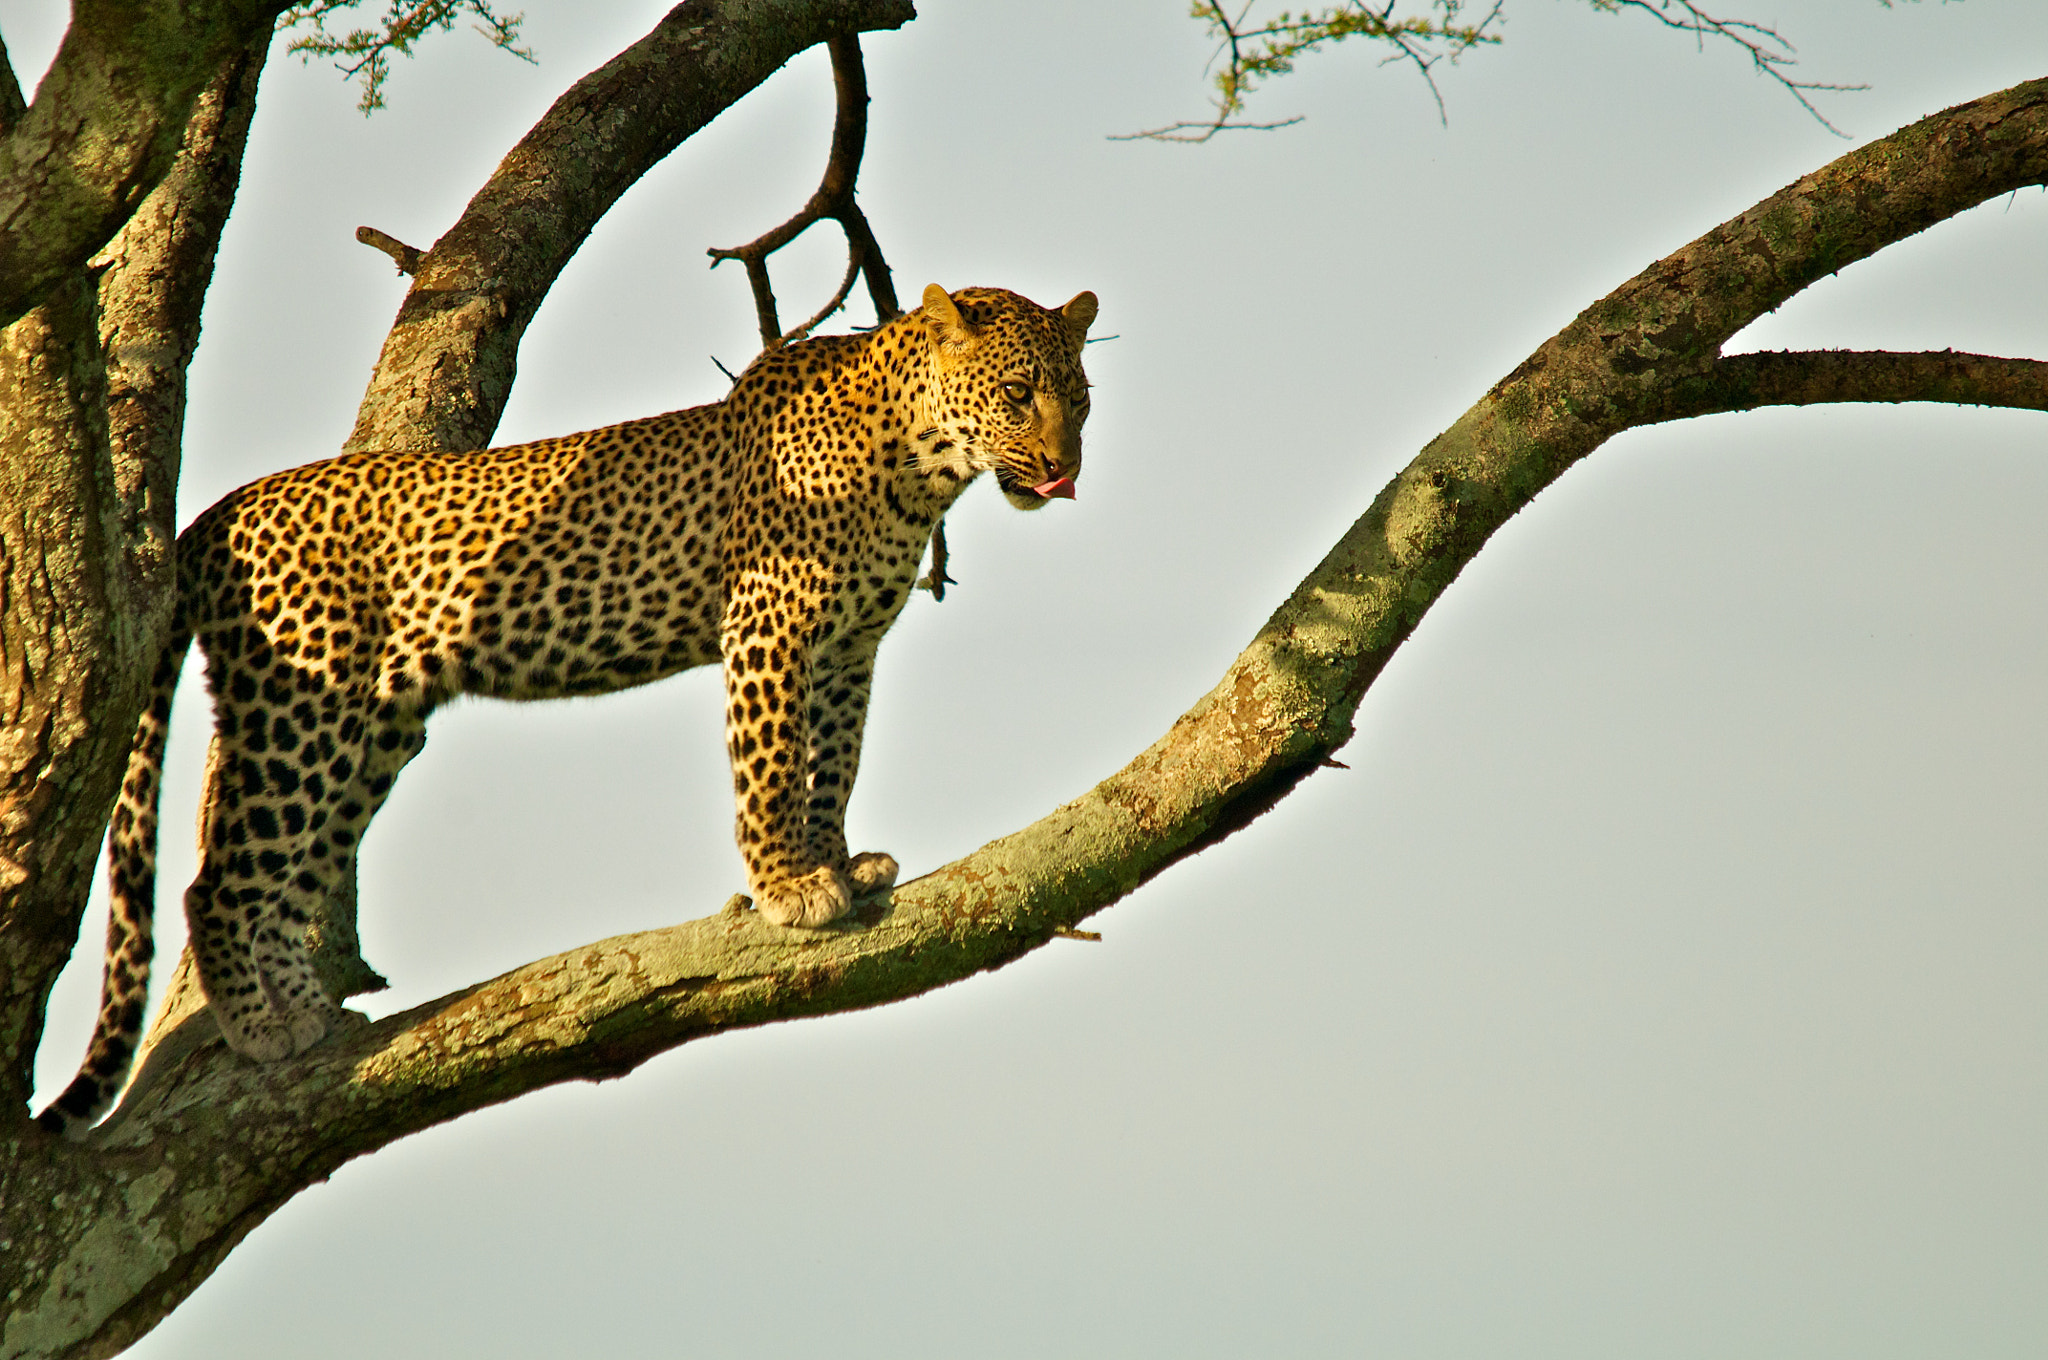 Photograph Serengeti Leopard in morning light by Seb Loram on 500px